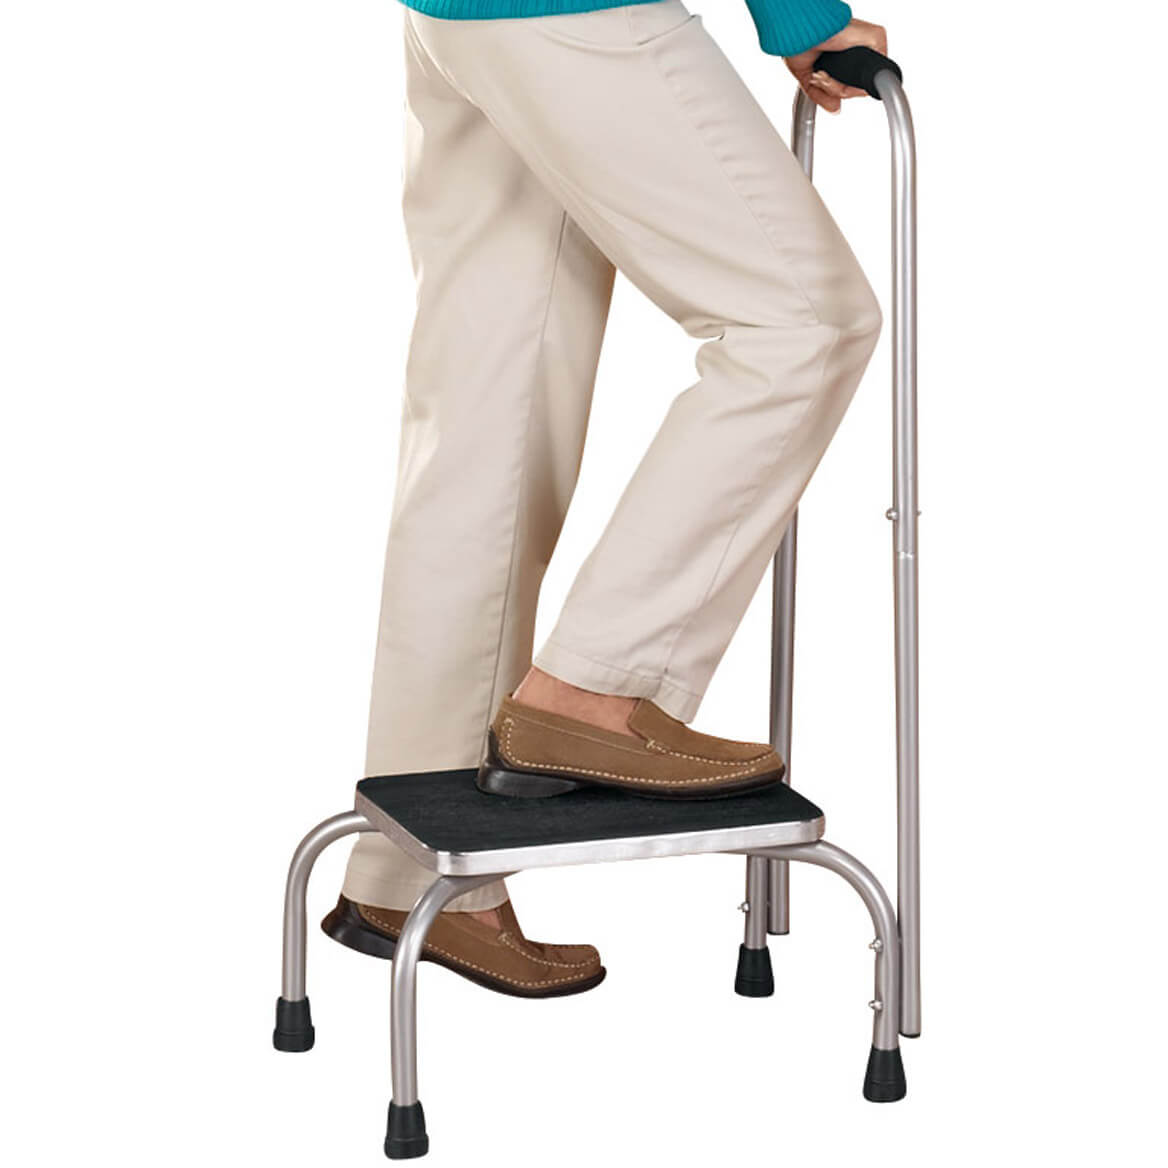 Handy Support Stool-331602